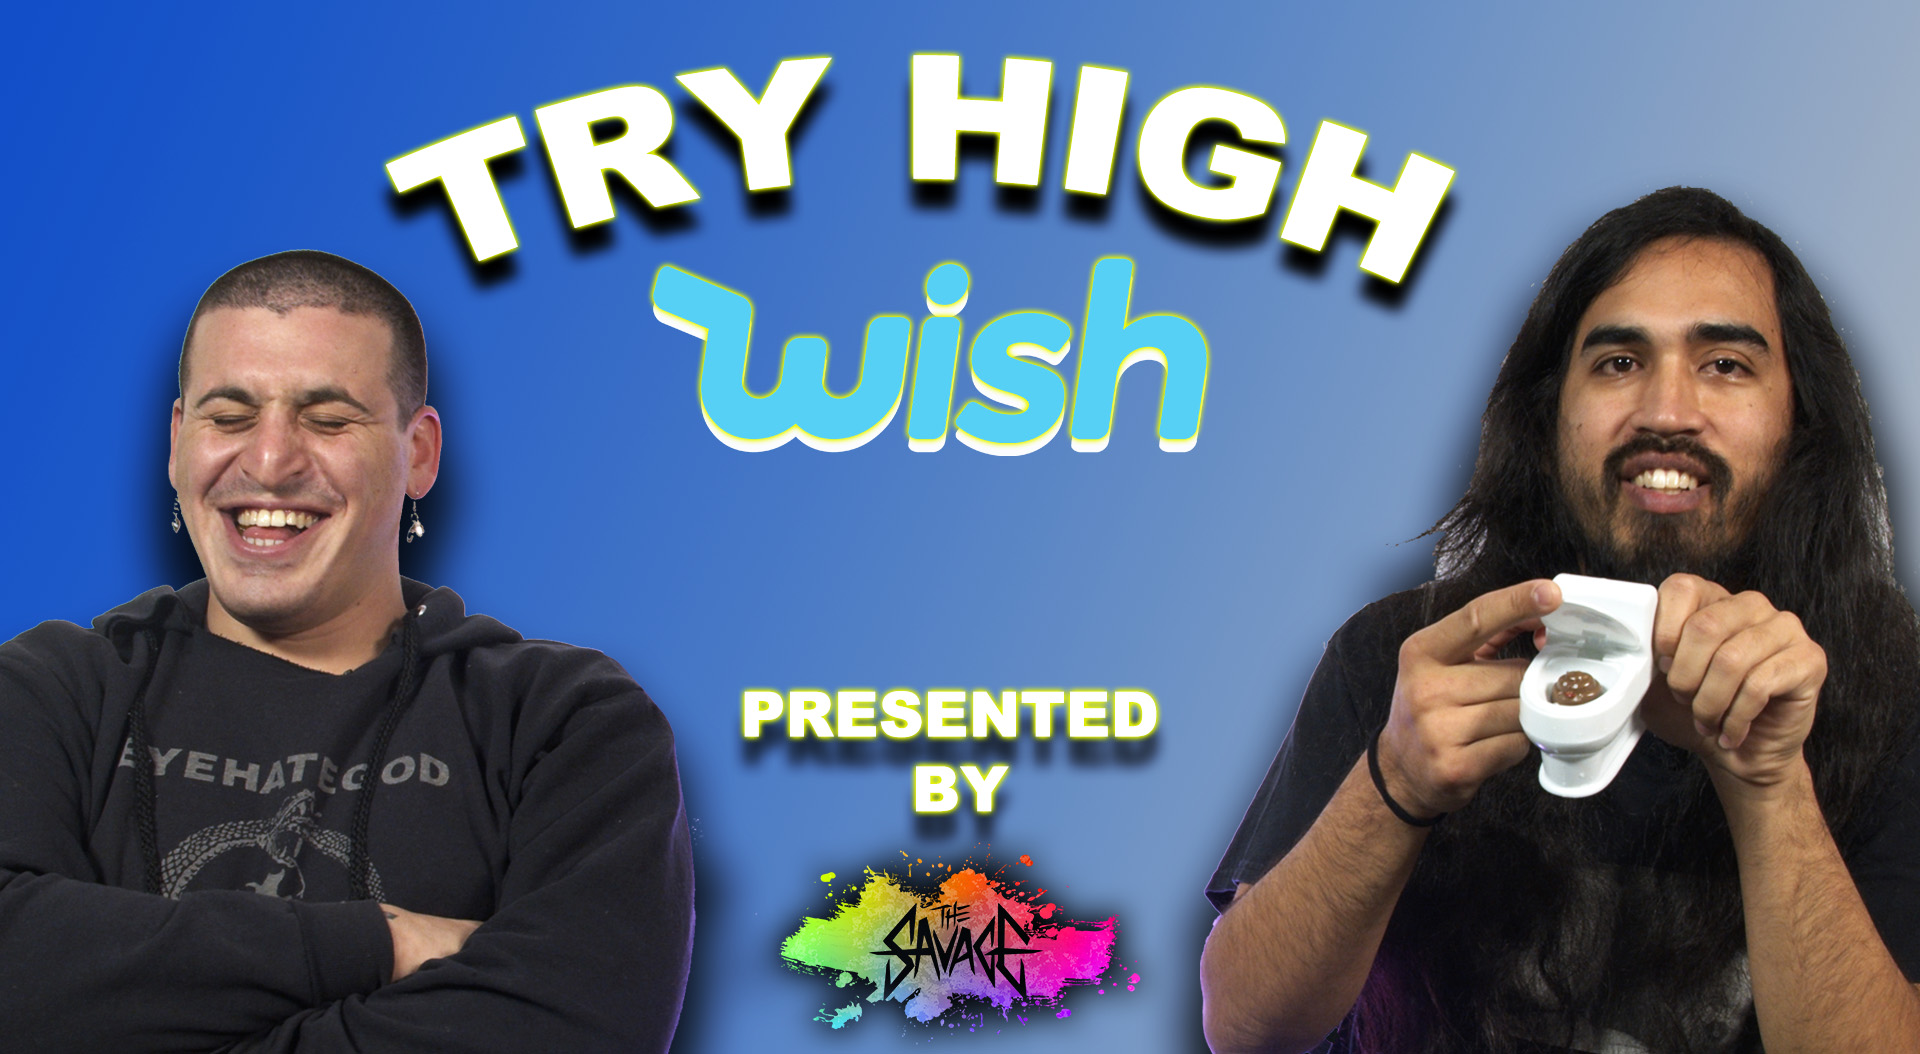 People Try Even MORE Wish Products High | TRY HIGH